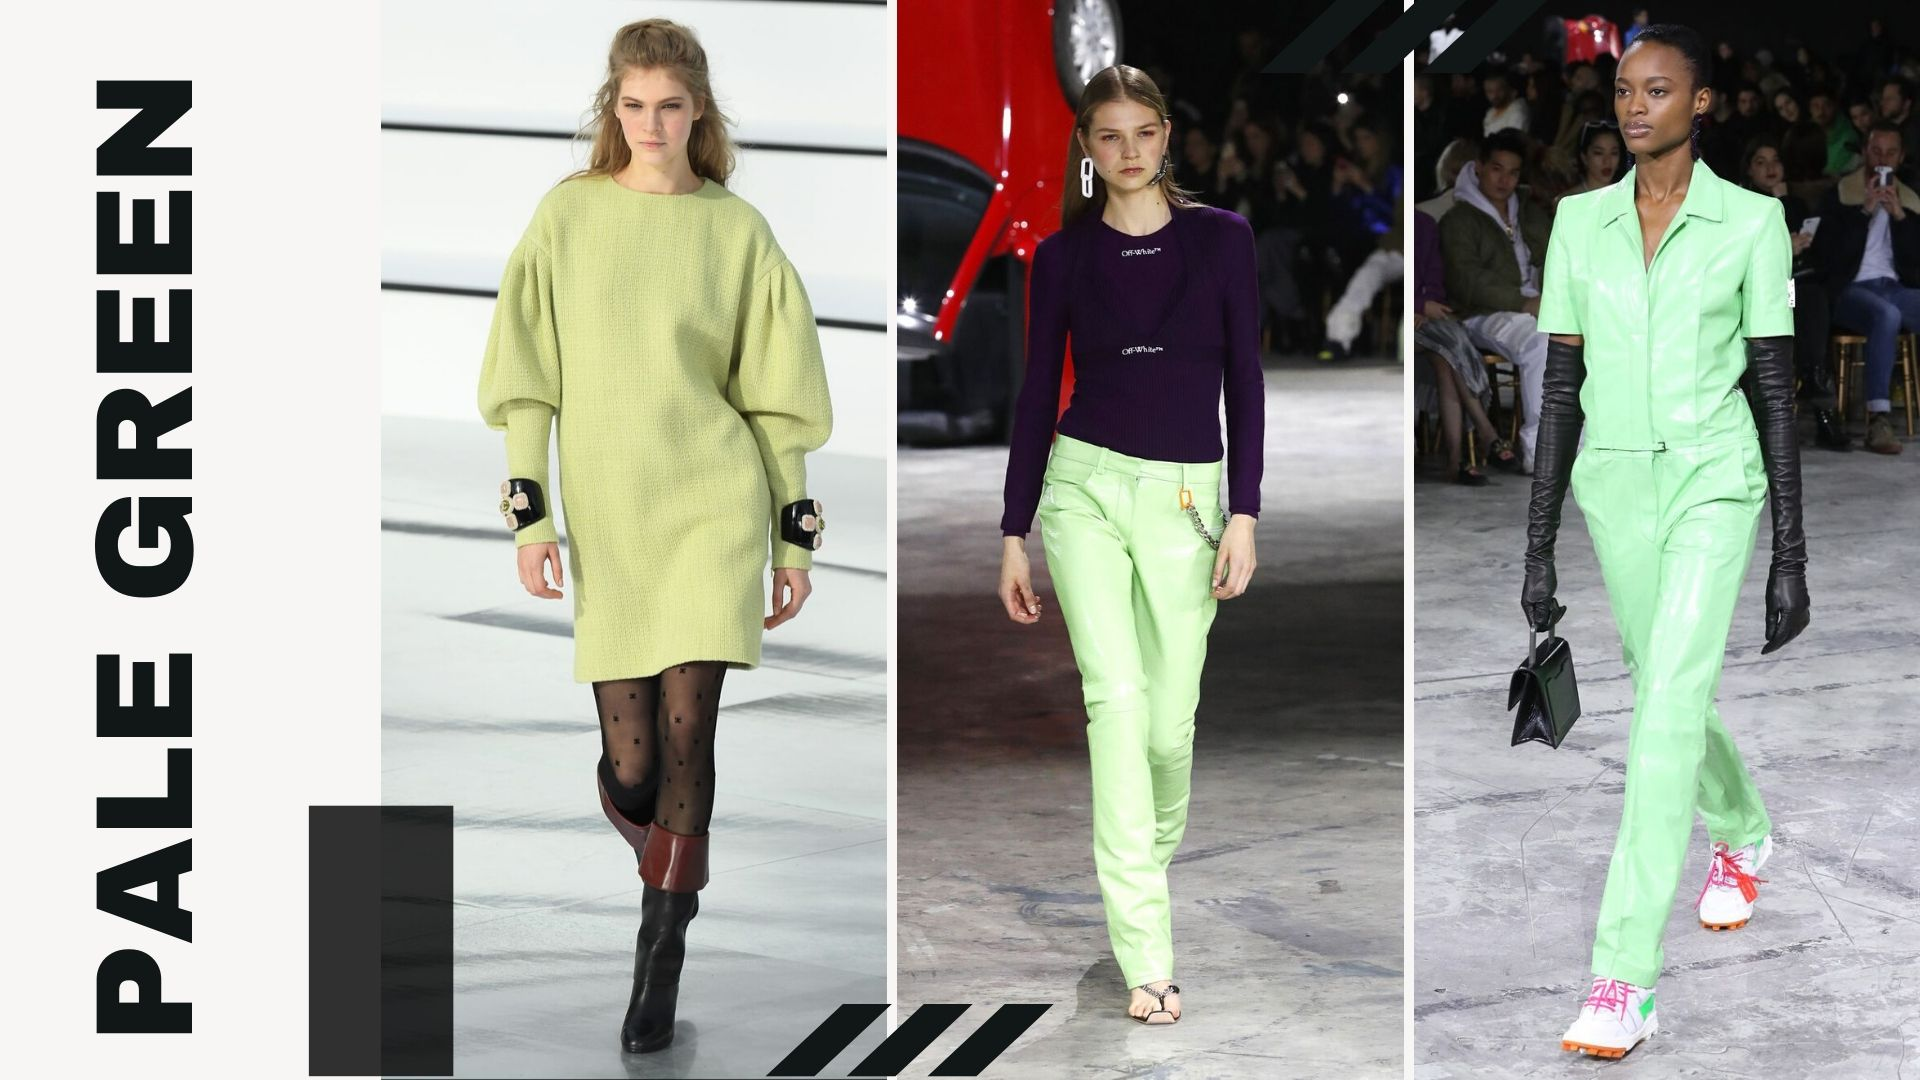 TOP 5 TRENDS FROM PFW F/W - Pale Green